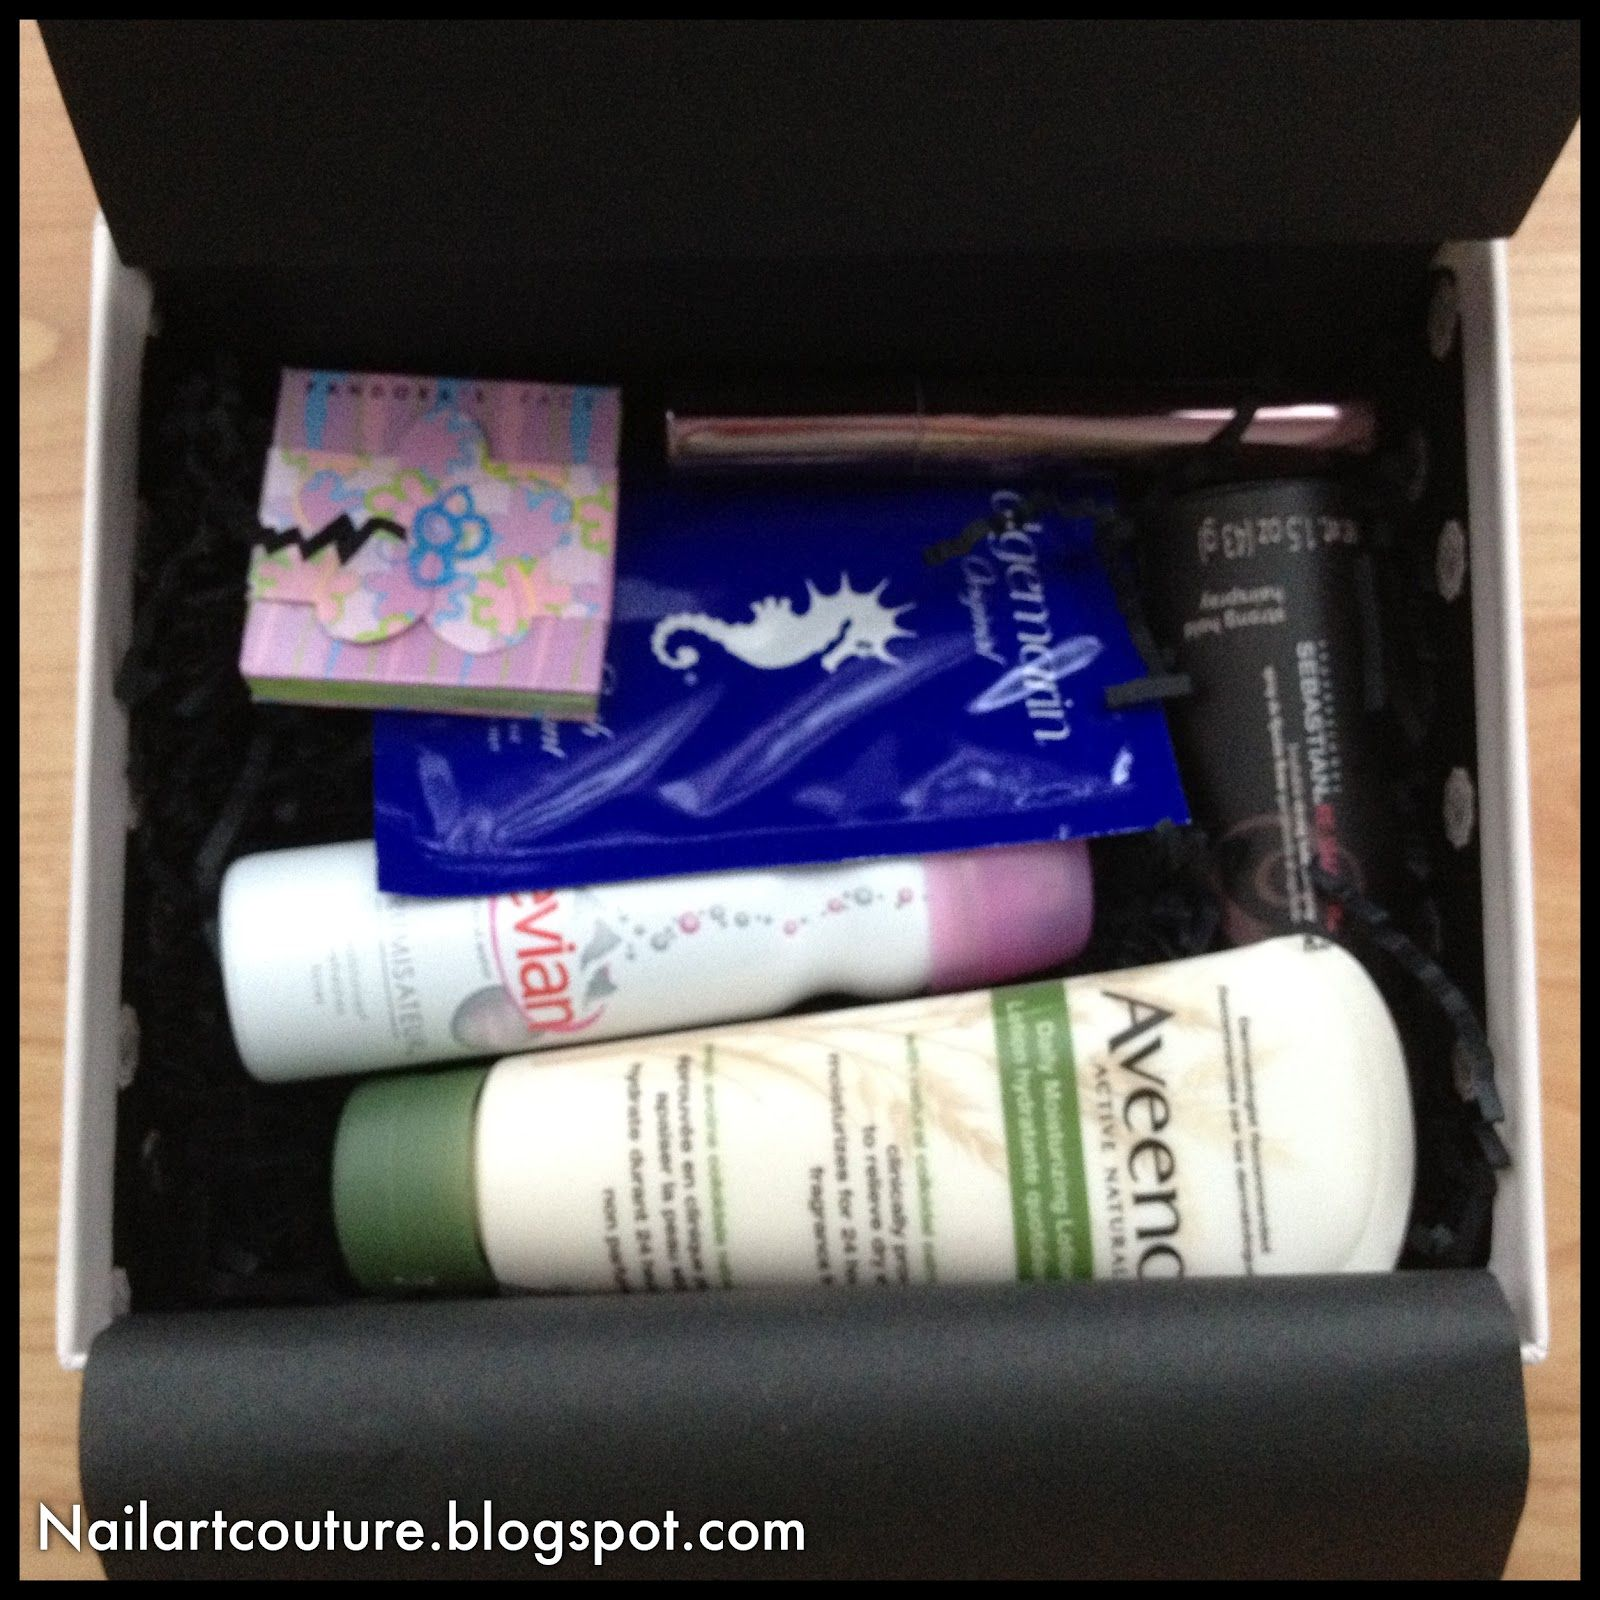 Glossybox Canada. March Box - I received over $60 in value for only $15.00/month! Check out my review of the products!